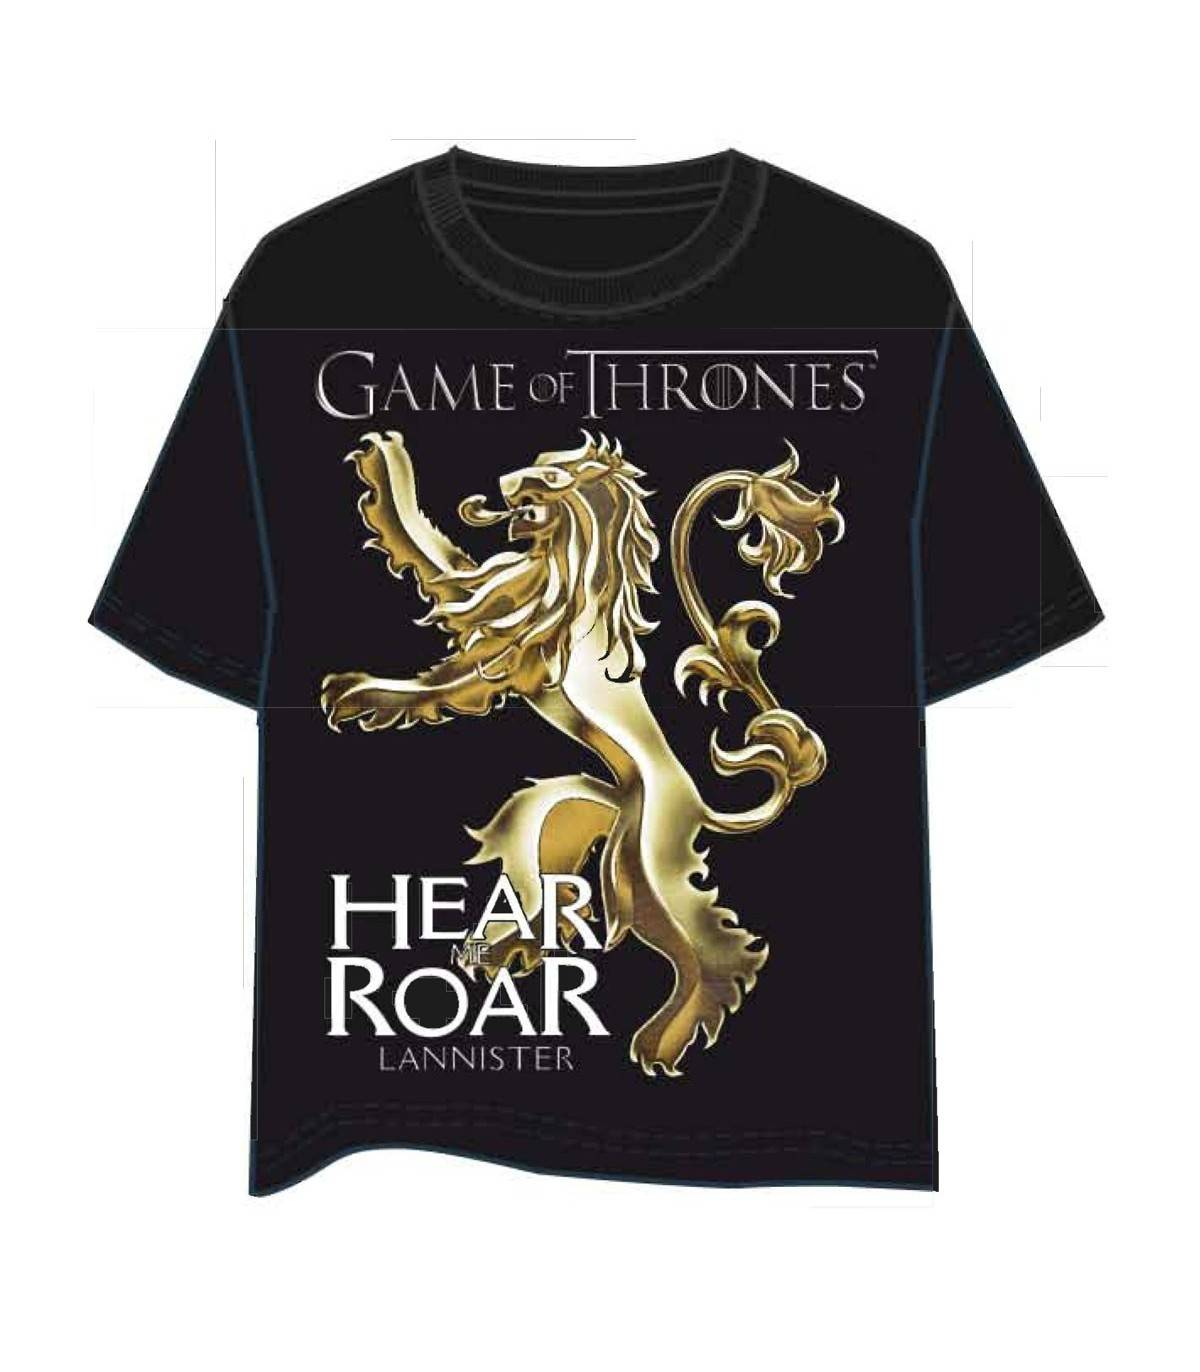 GAMES OF THRONES Camiseta JUEGO DE TRONOS 3565 Negro P/S